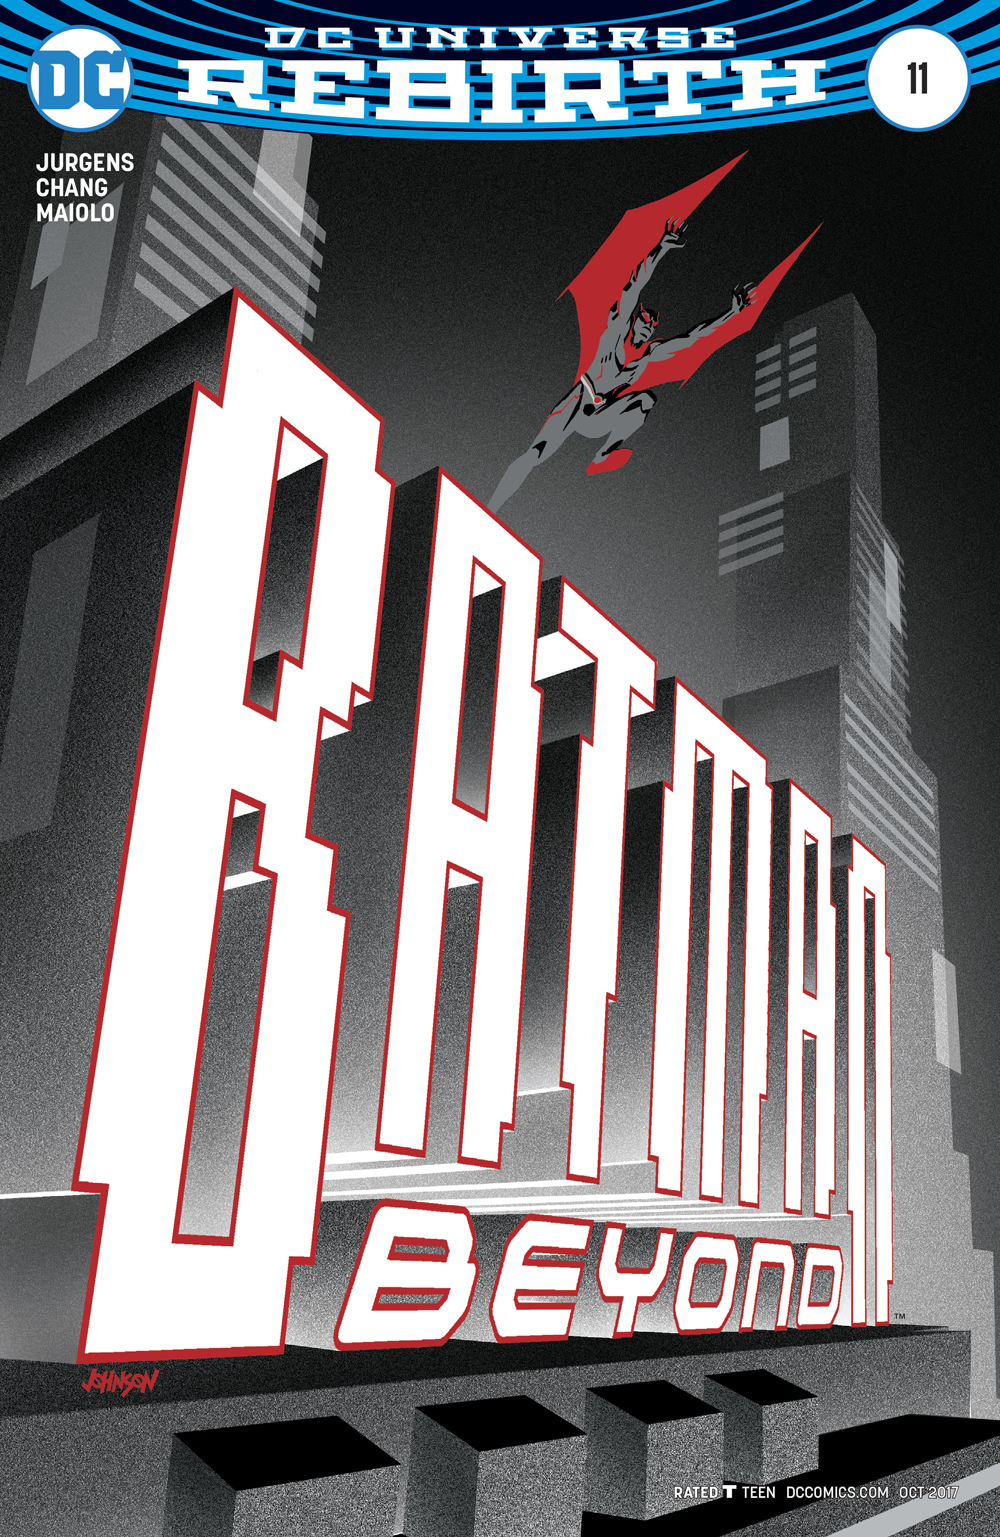 BATMAN BEYOND #11 VAR ED